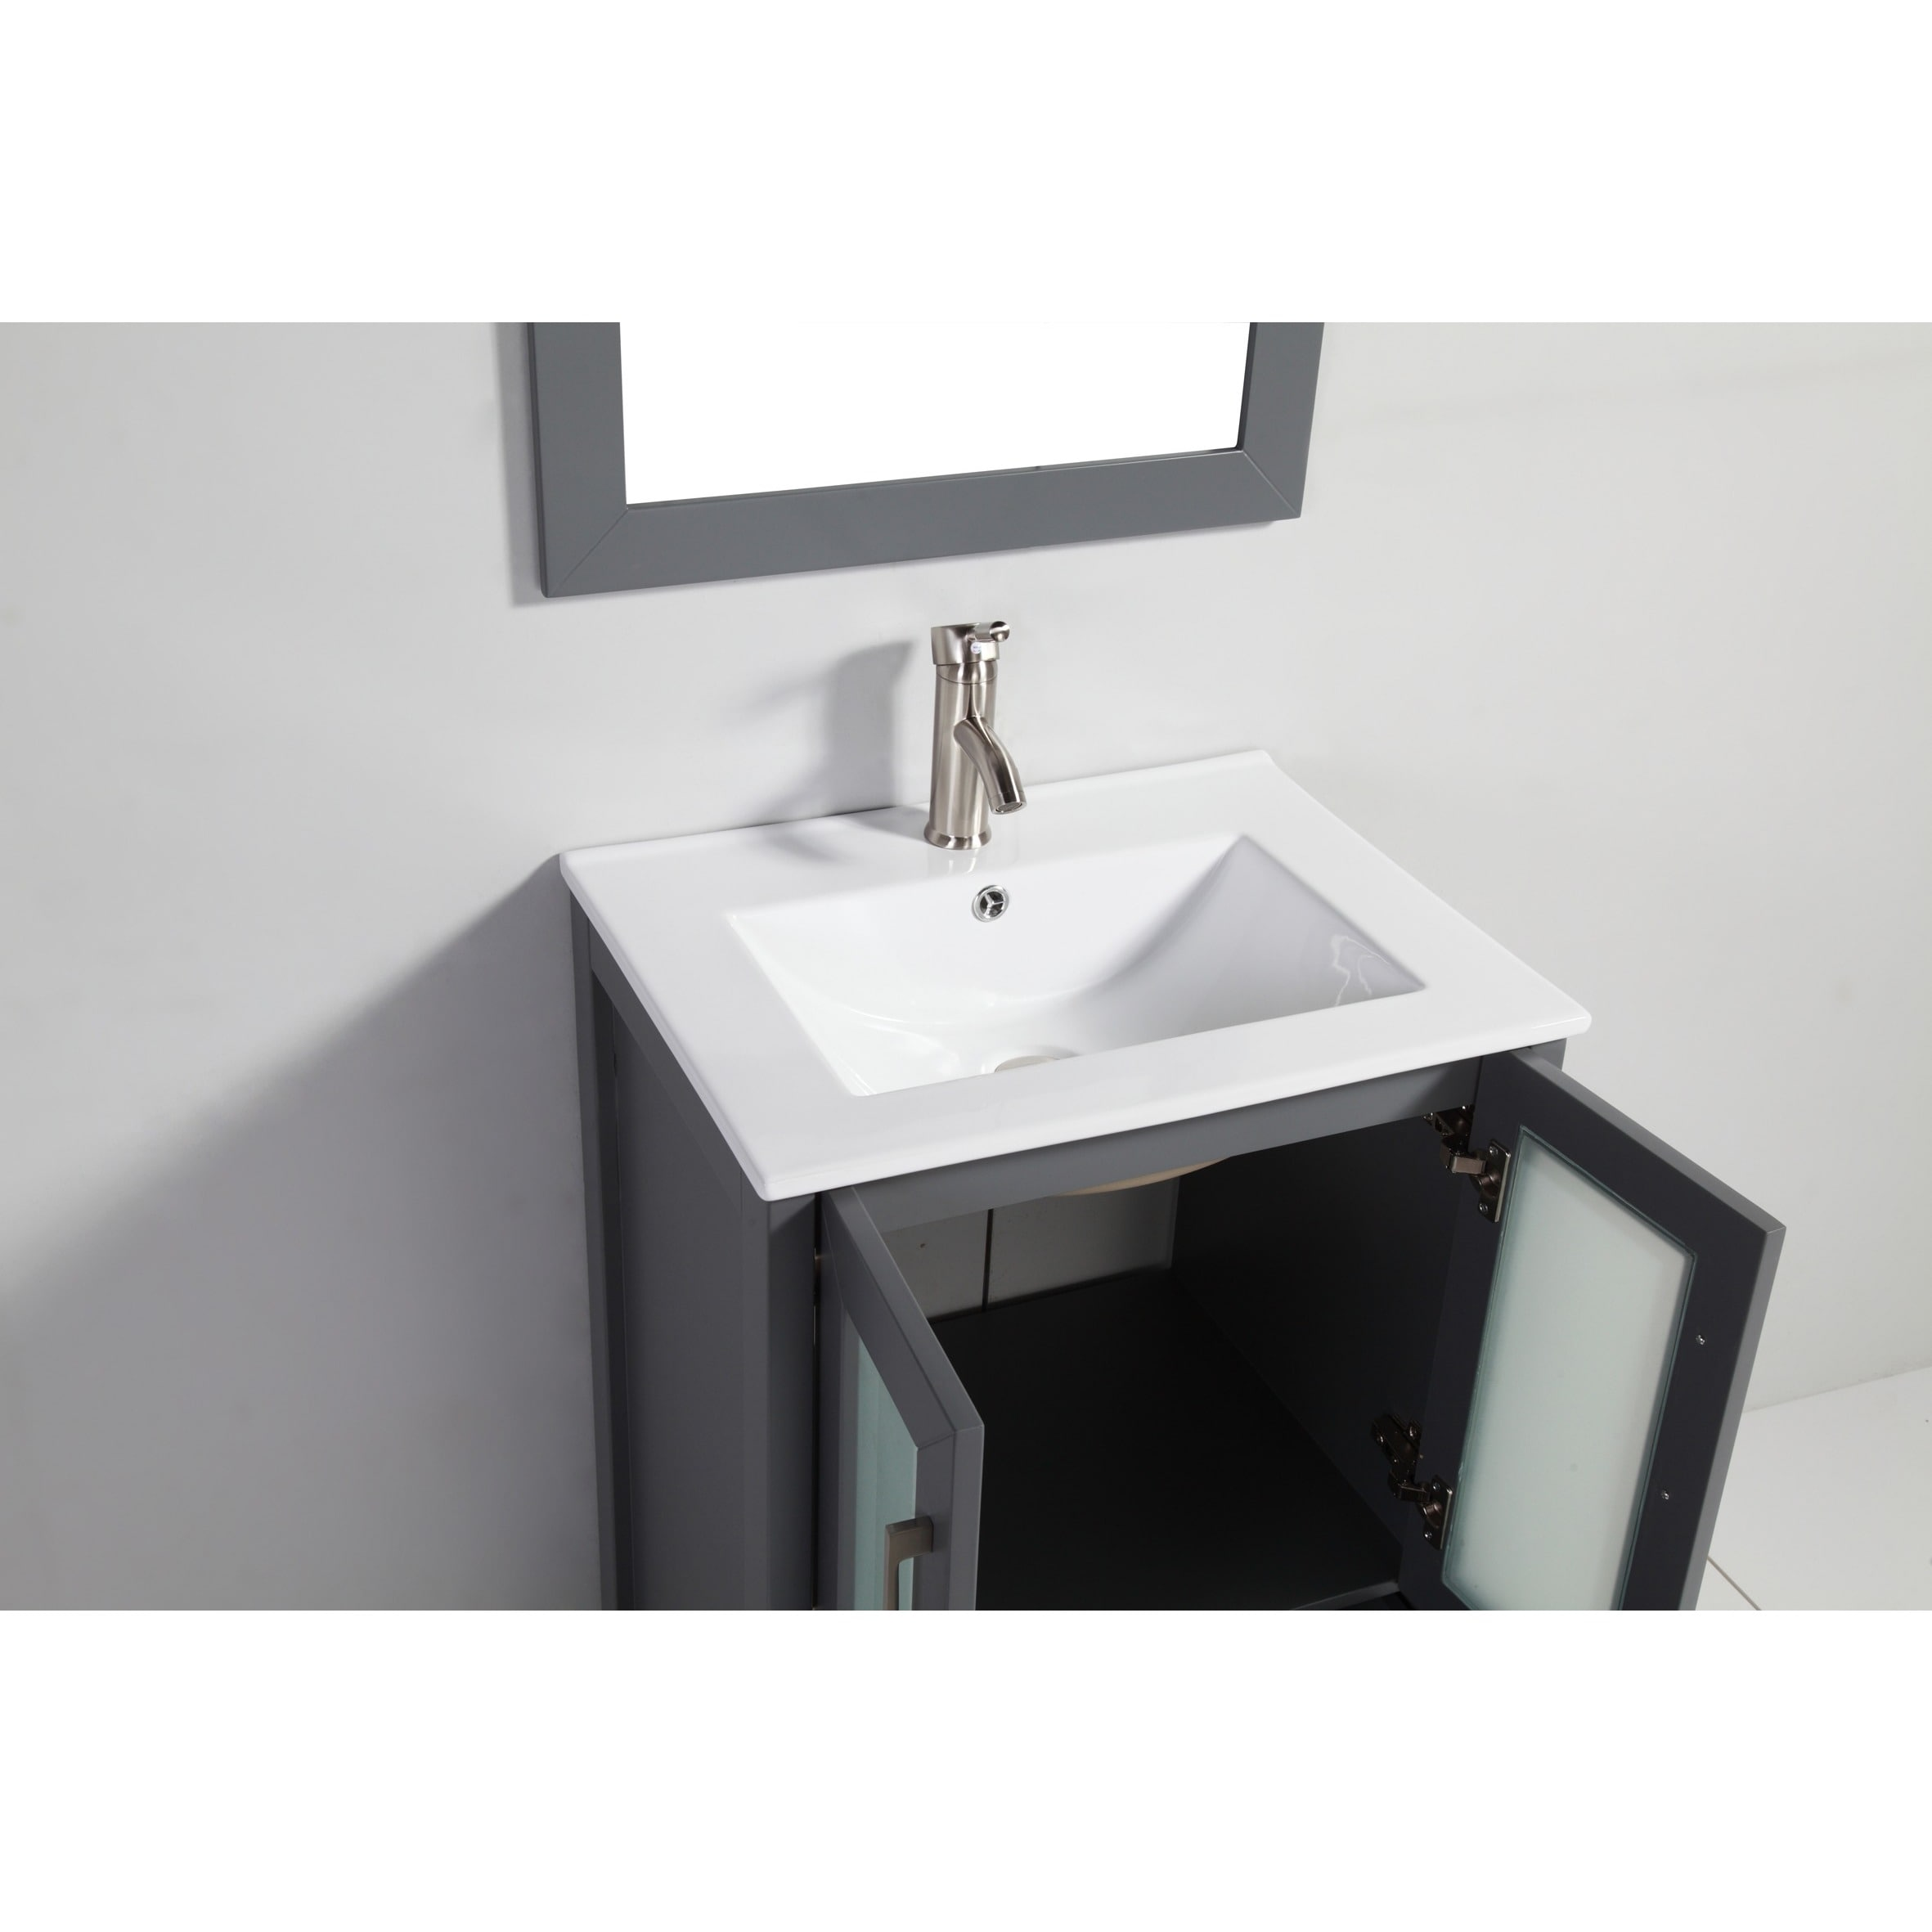 picture gallery lowes and in countertops great vanity inch decoration canada creative cabinet vanities bathroom trends